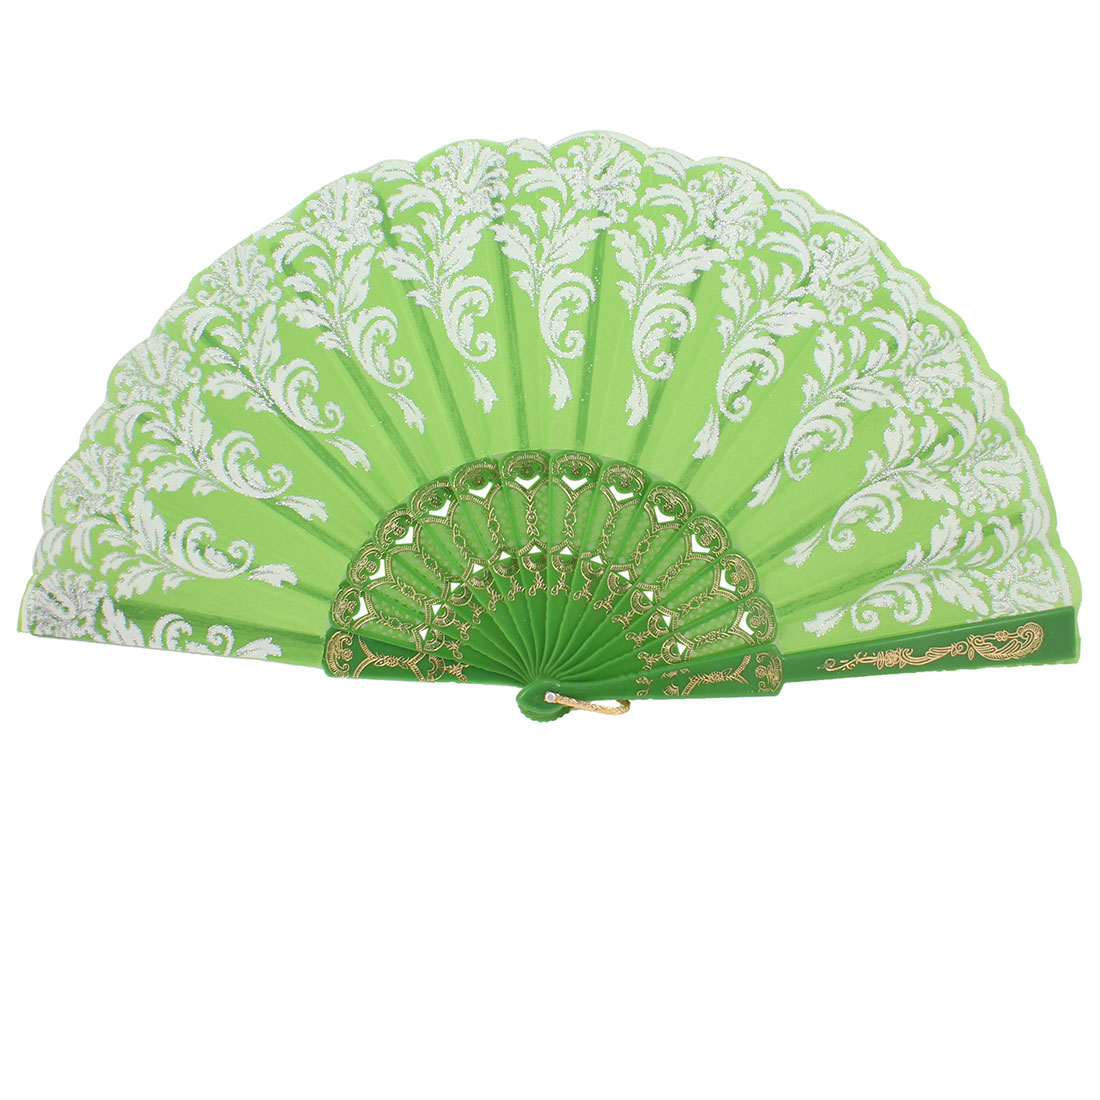 White Flower Glitter Powder Pattern Hollow Out Frame Green hand Folding Fan